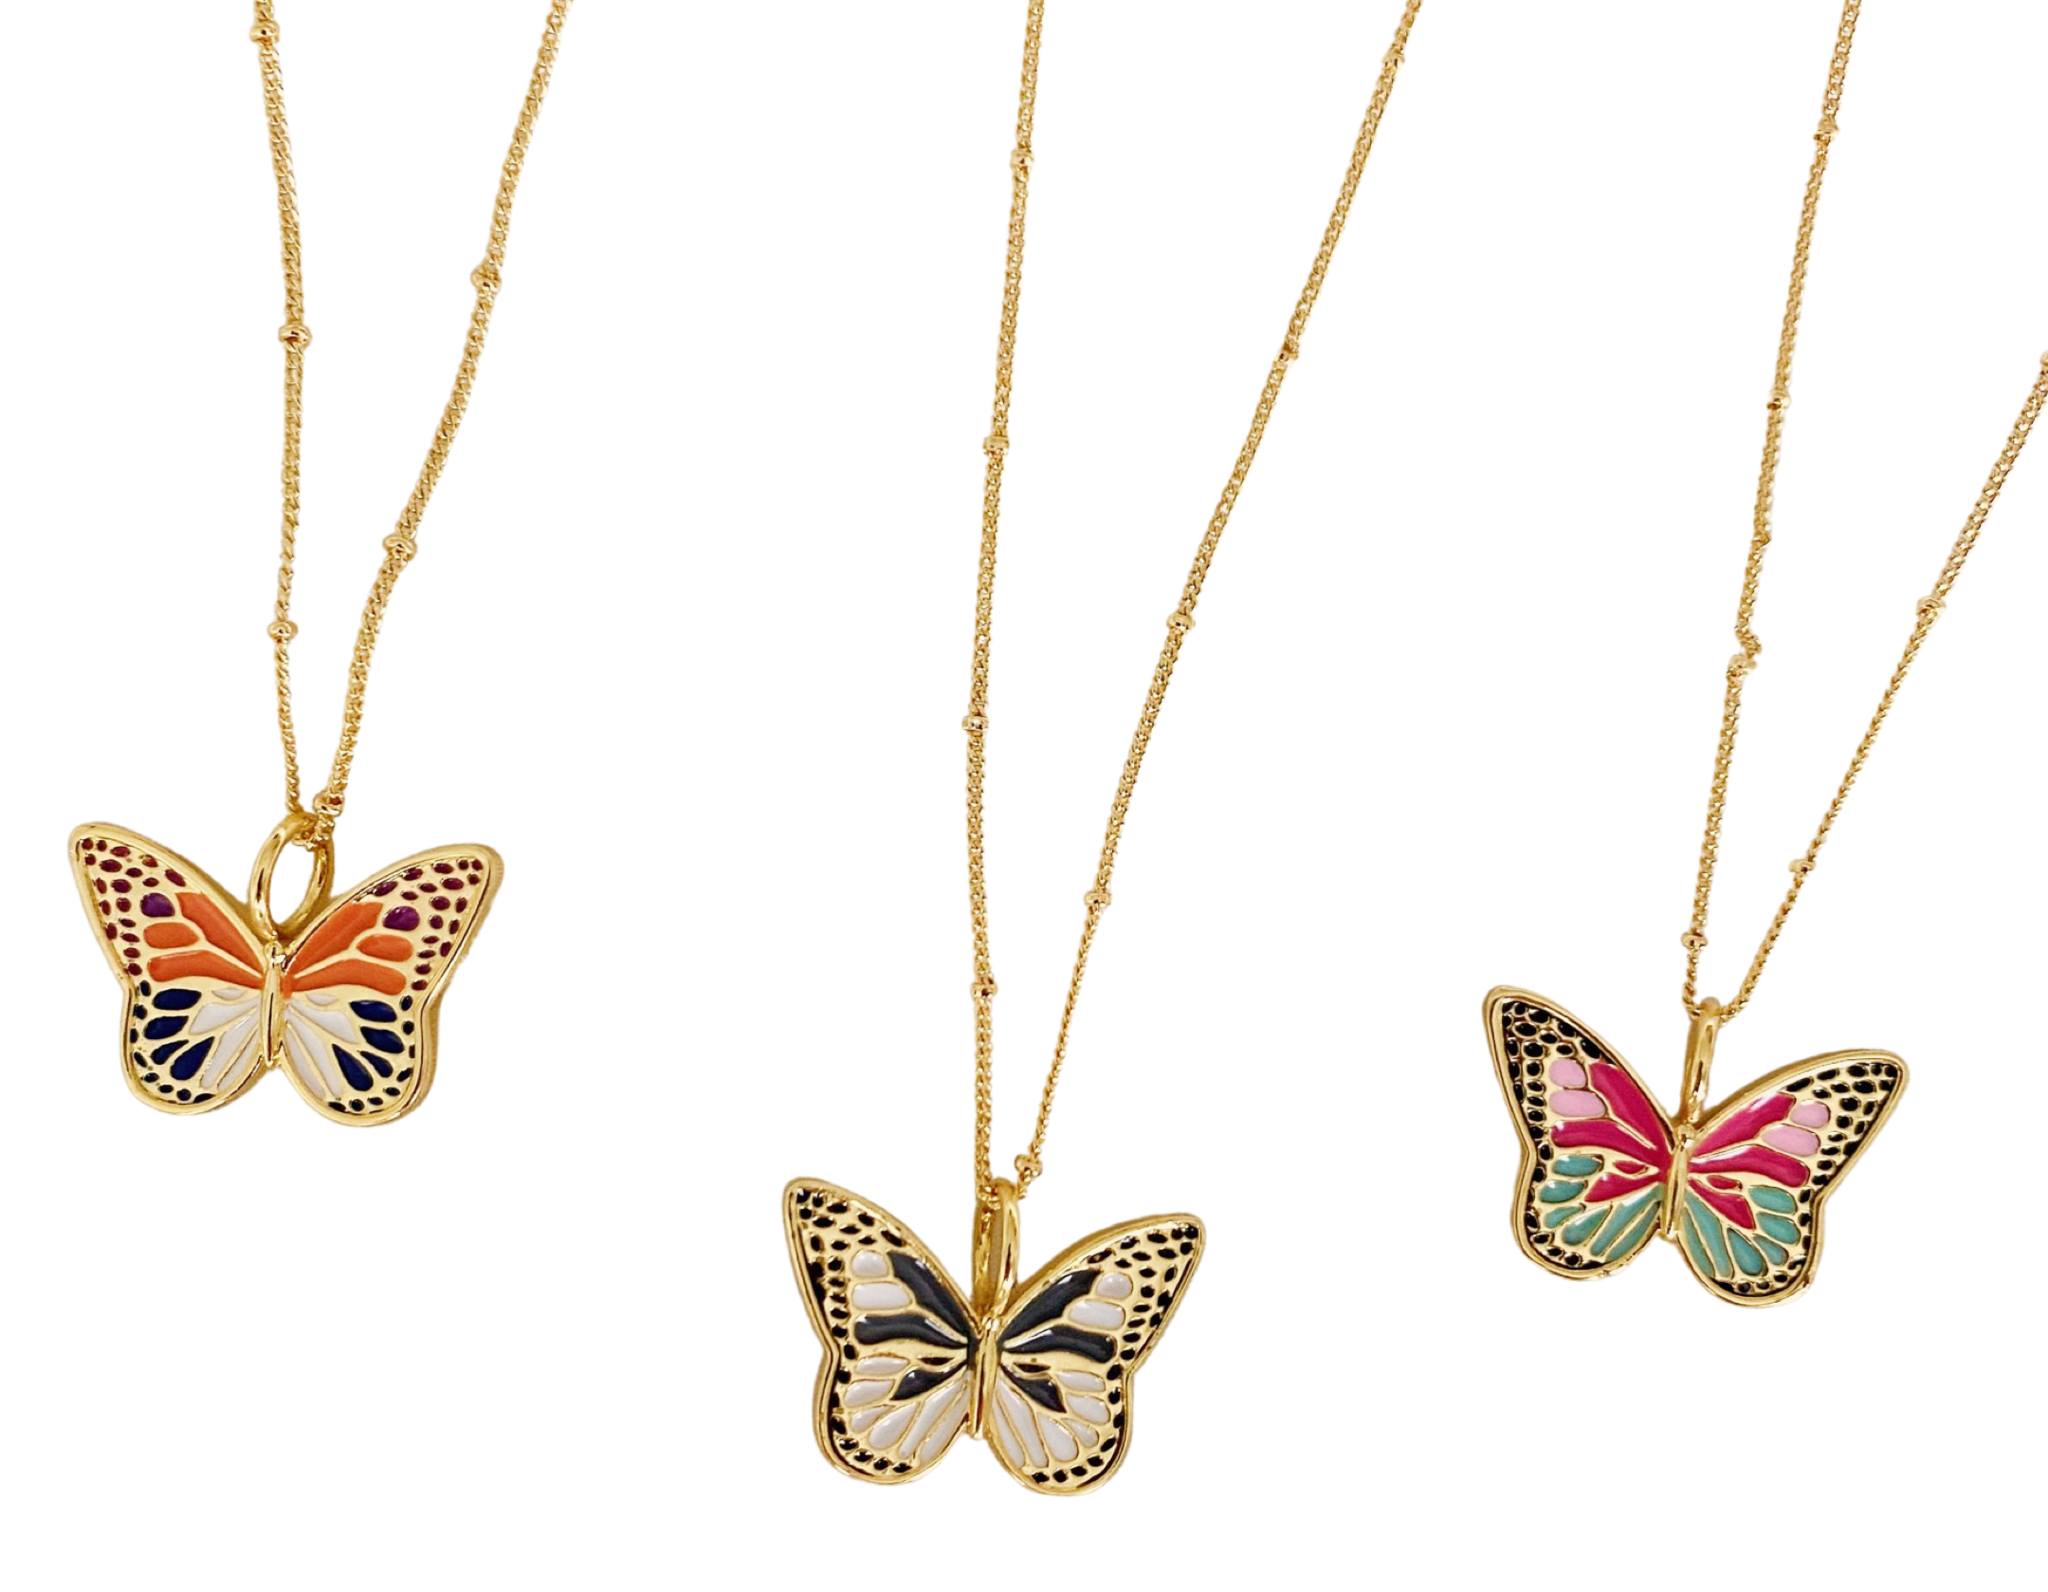 butterfly necklaces in three different colors